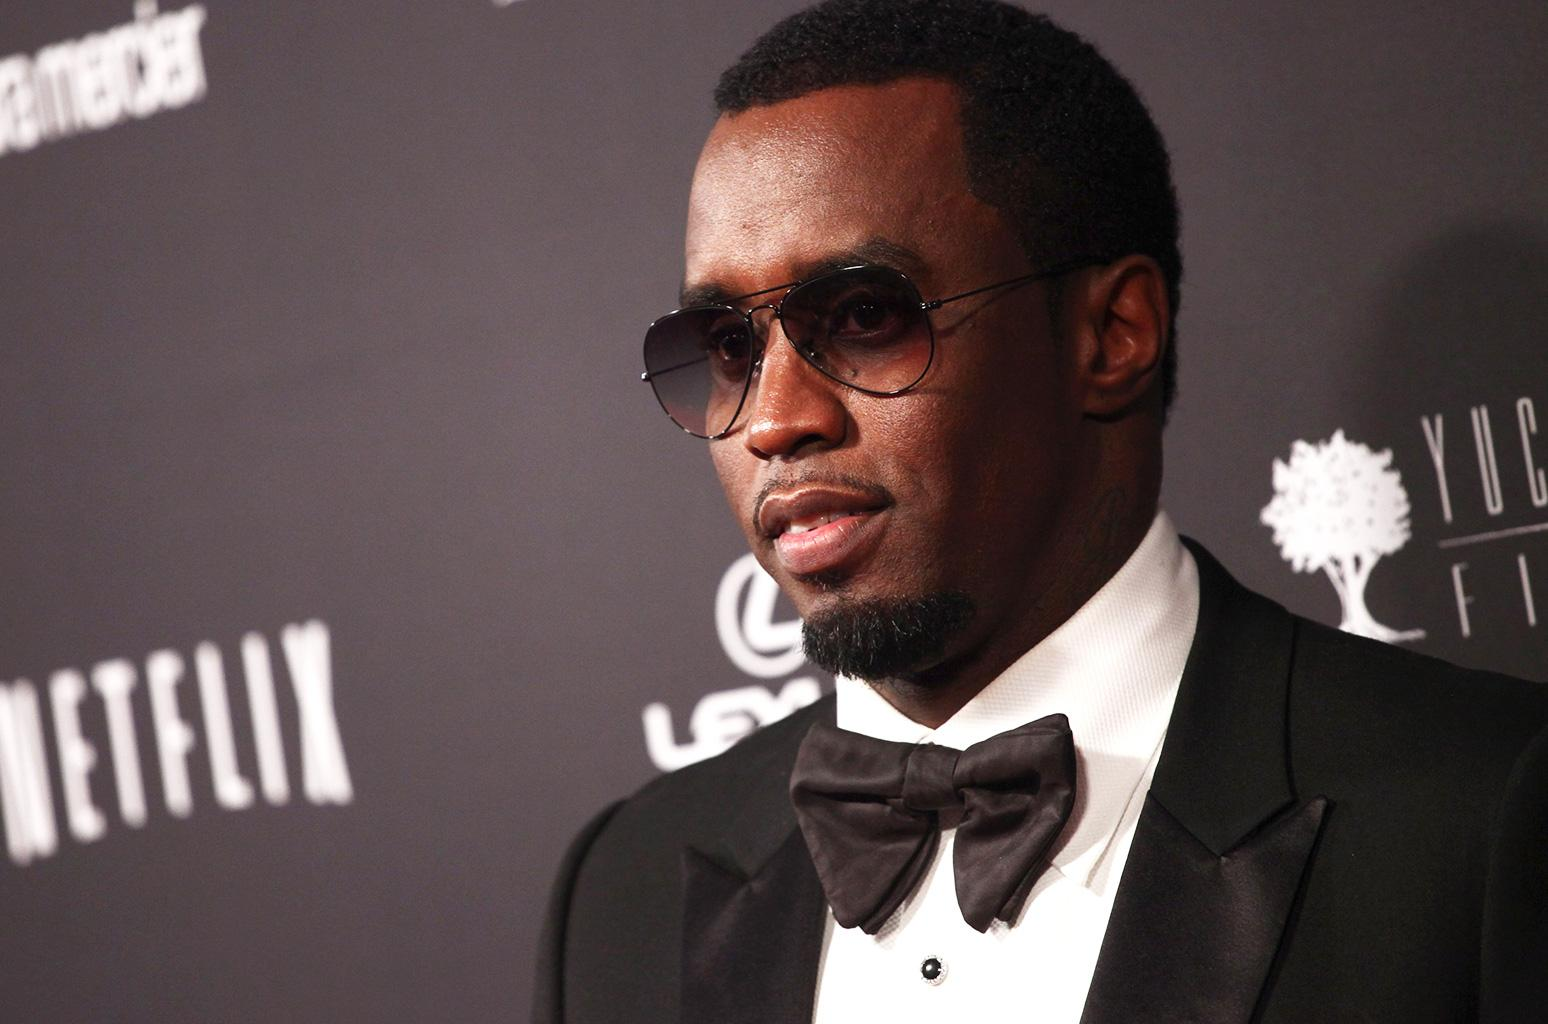 Diddy Worries Fans With His New Look Amidst Cassie's New Romance With Alex Fine - Watch The Video